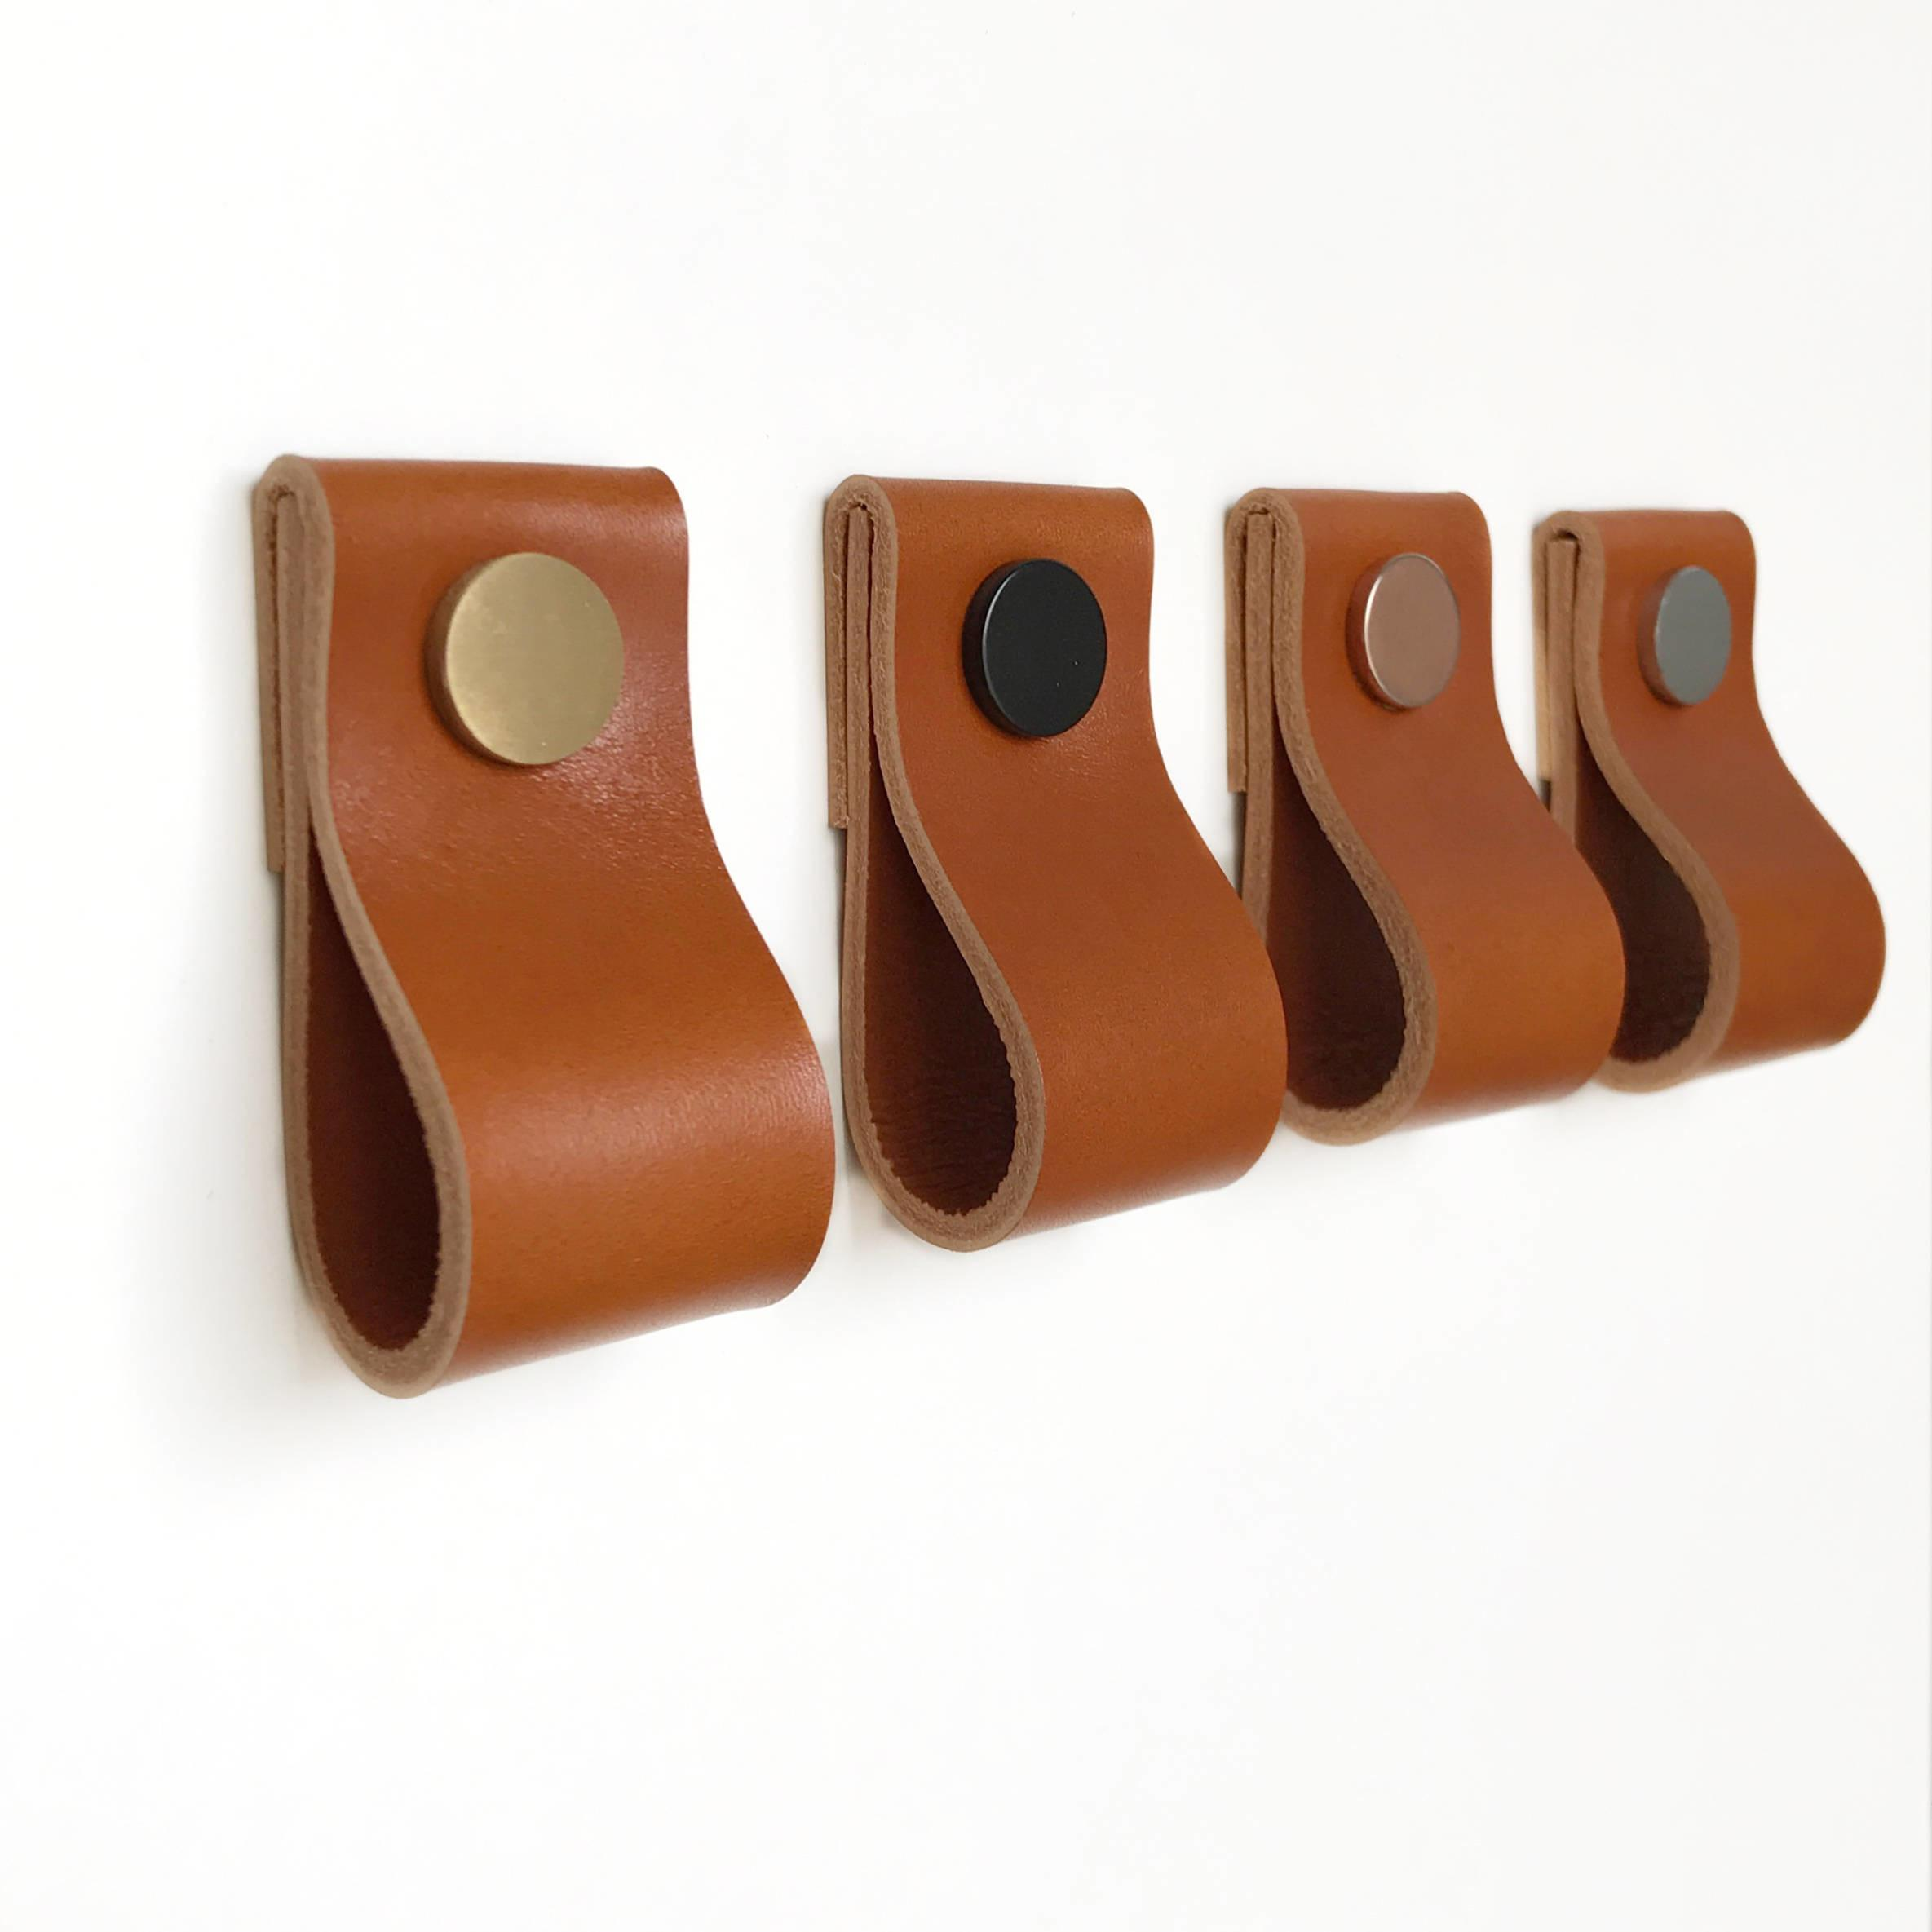 Leather Pulls Handles Cabinet Hardware